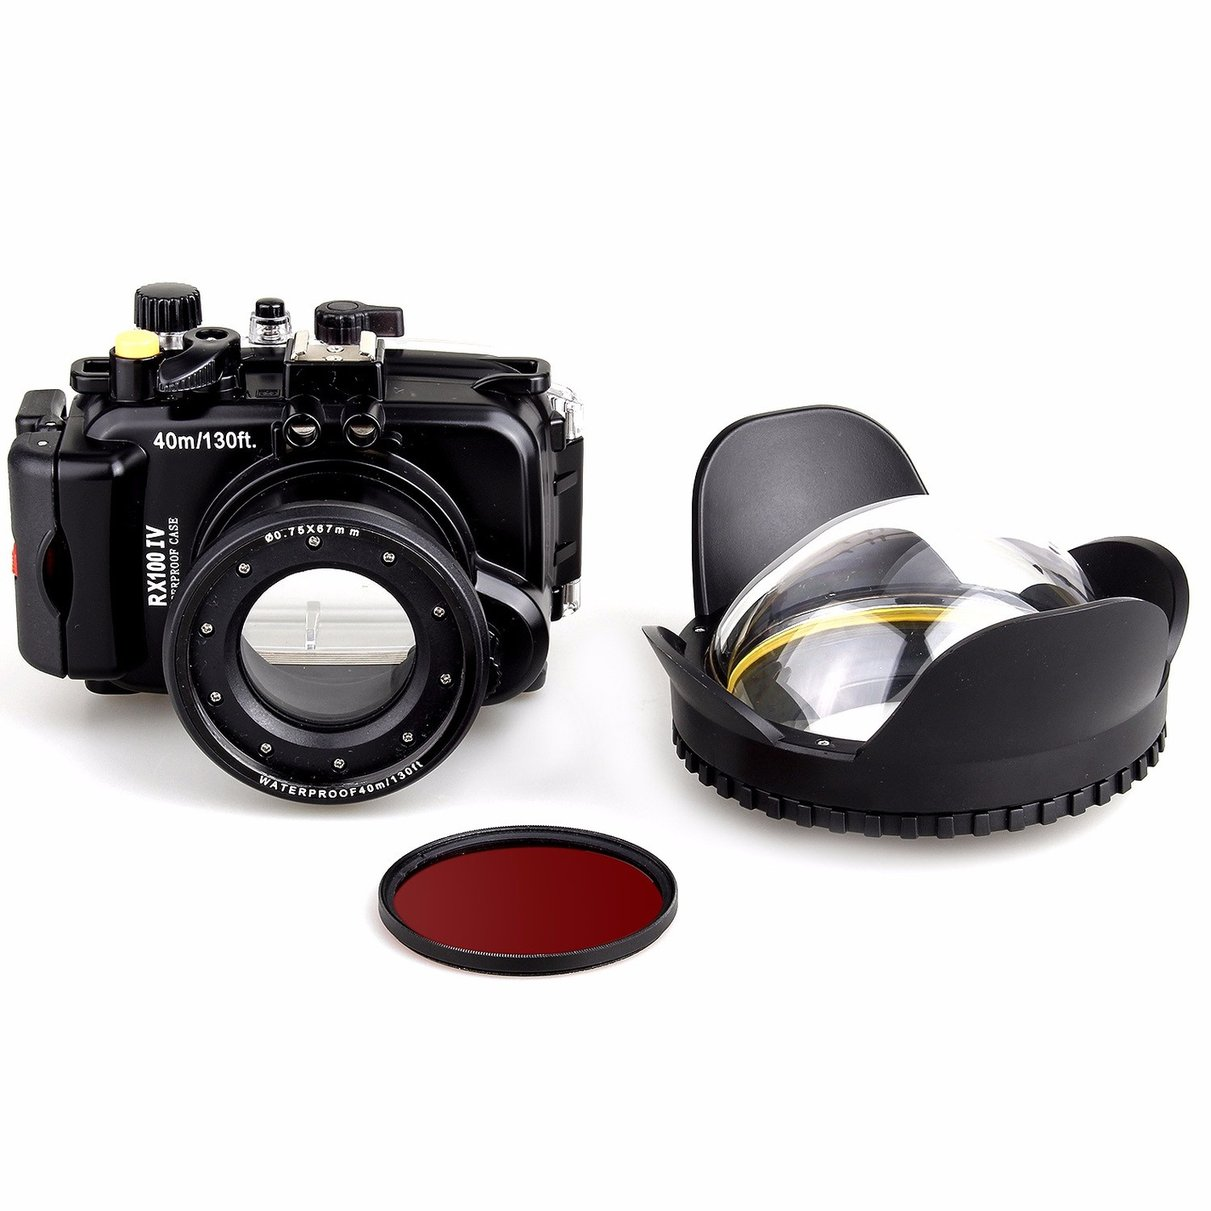 40M Underwater Waterproof Camera Housing Diving Case for Sony DSC RX100 IV RX100 M4 + Red Filter 67mm + 67mm Fisheye Lens sony dsc rx100 iv black